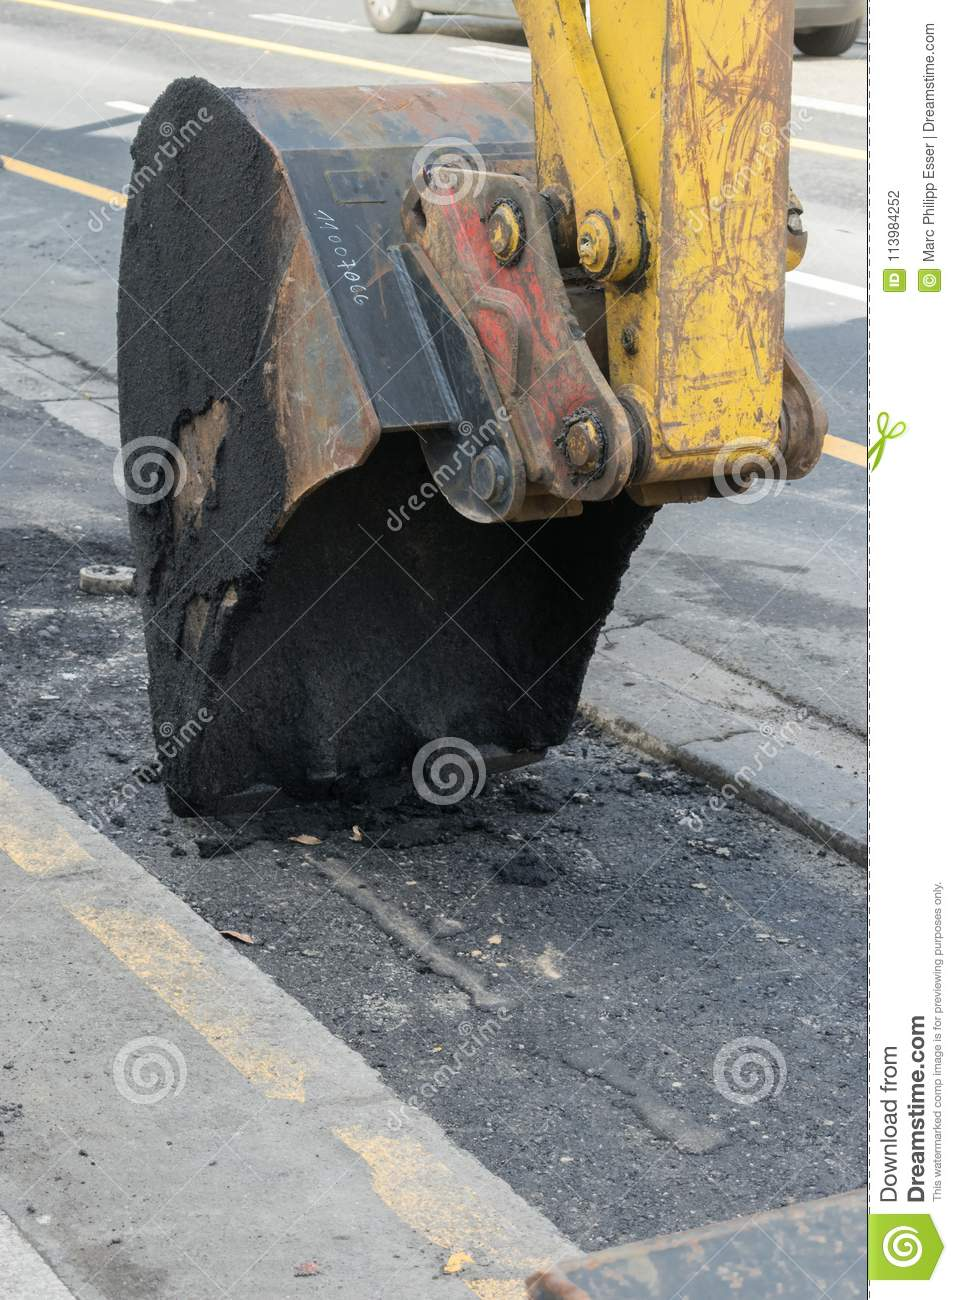 Alquitrán Asphalt Close Up Construction Roadwork de Shovel Scratching Tearing del excavador